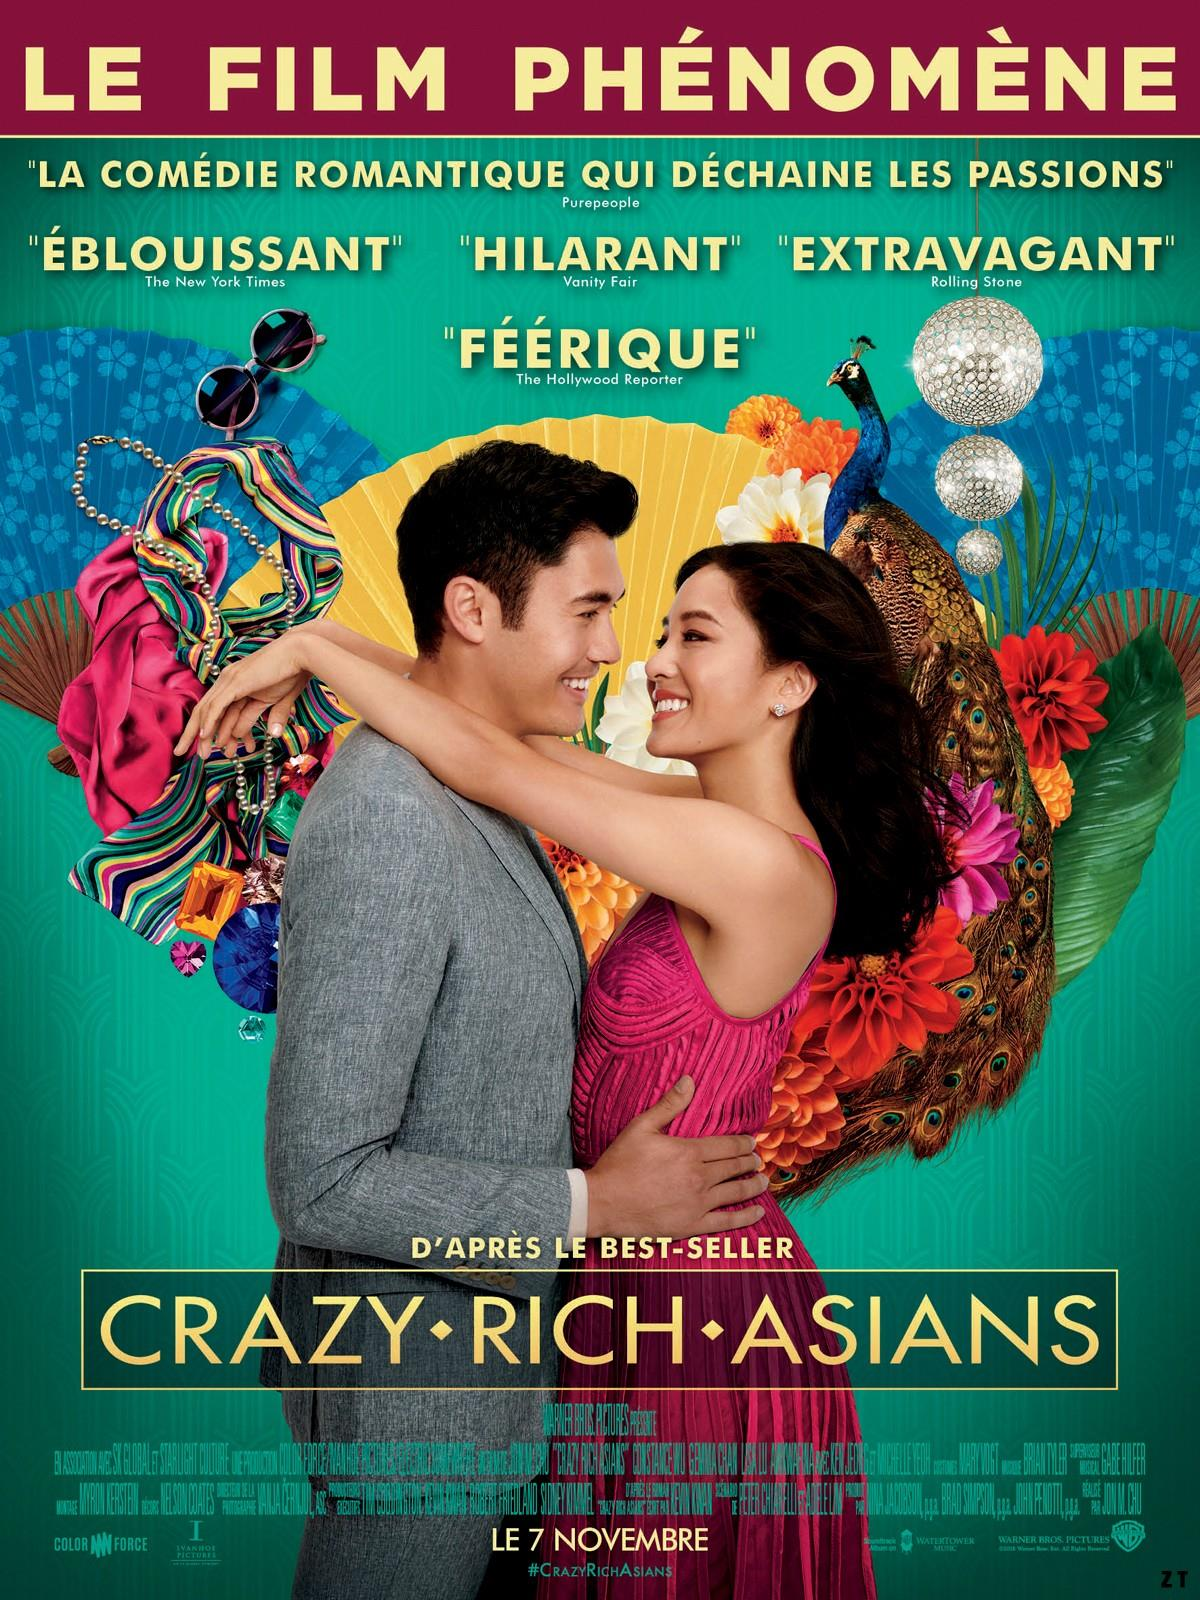 telecharger Crazy Rich Asians 2018 TRUEFRENCH 720p BluRay x264 AC3 torrent9